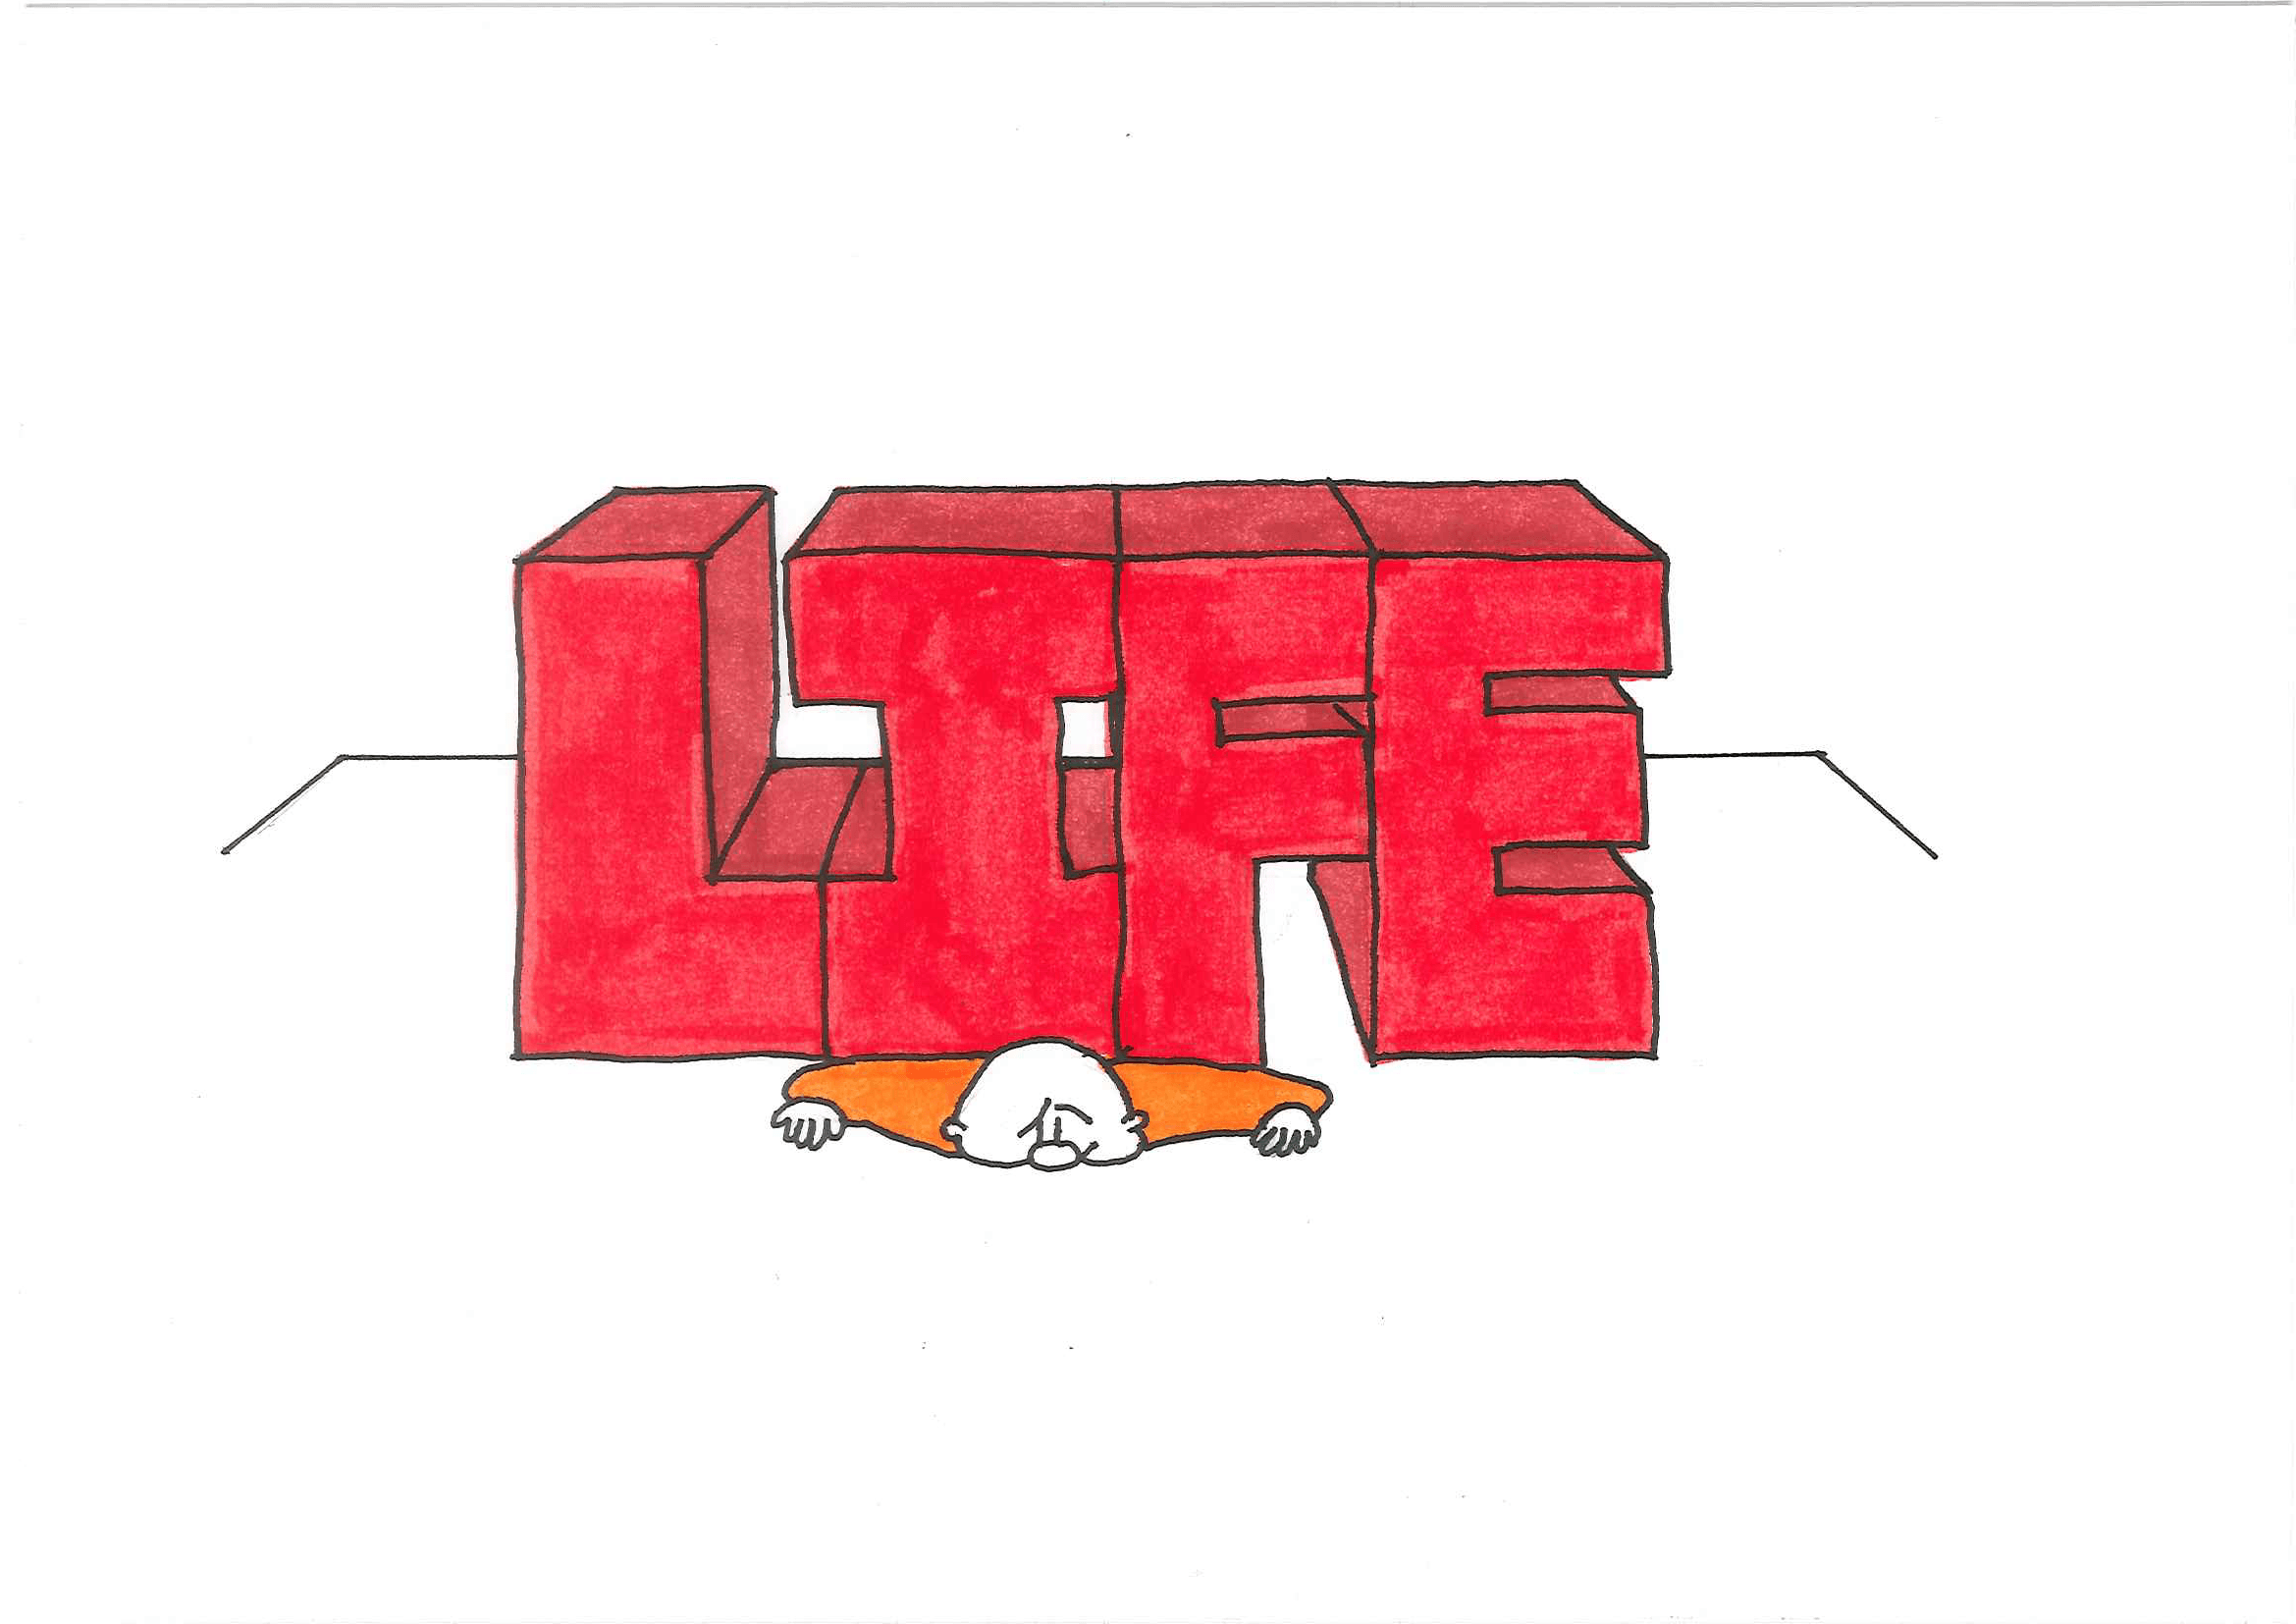 10 More Doodles About Living With Depression